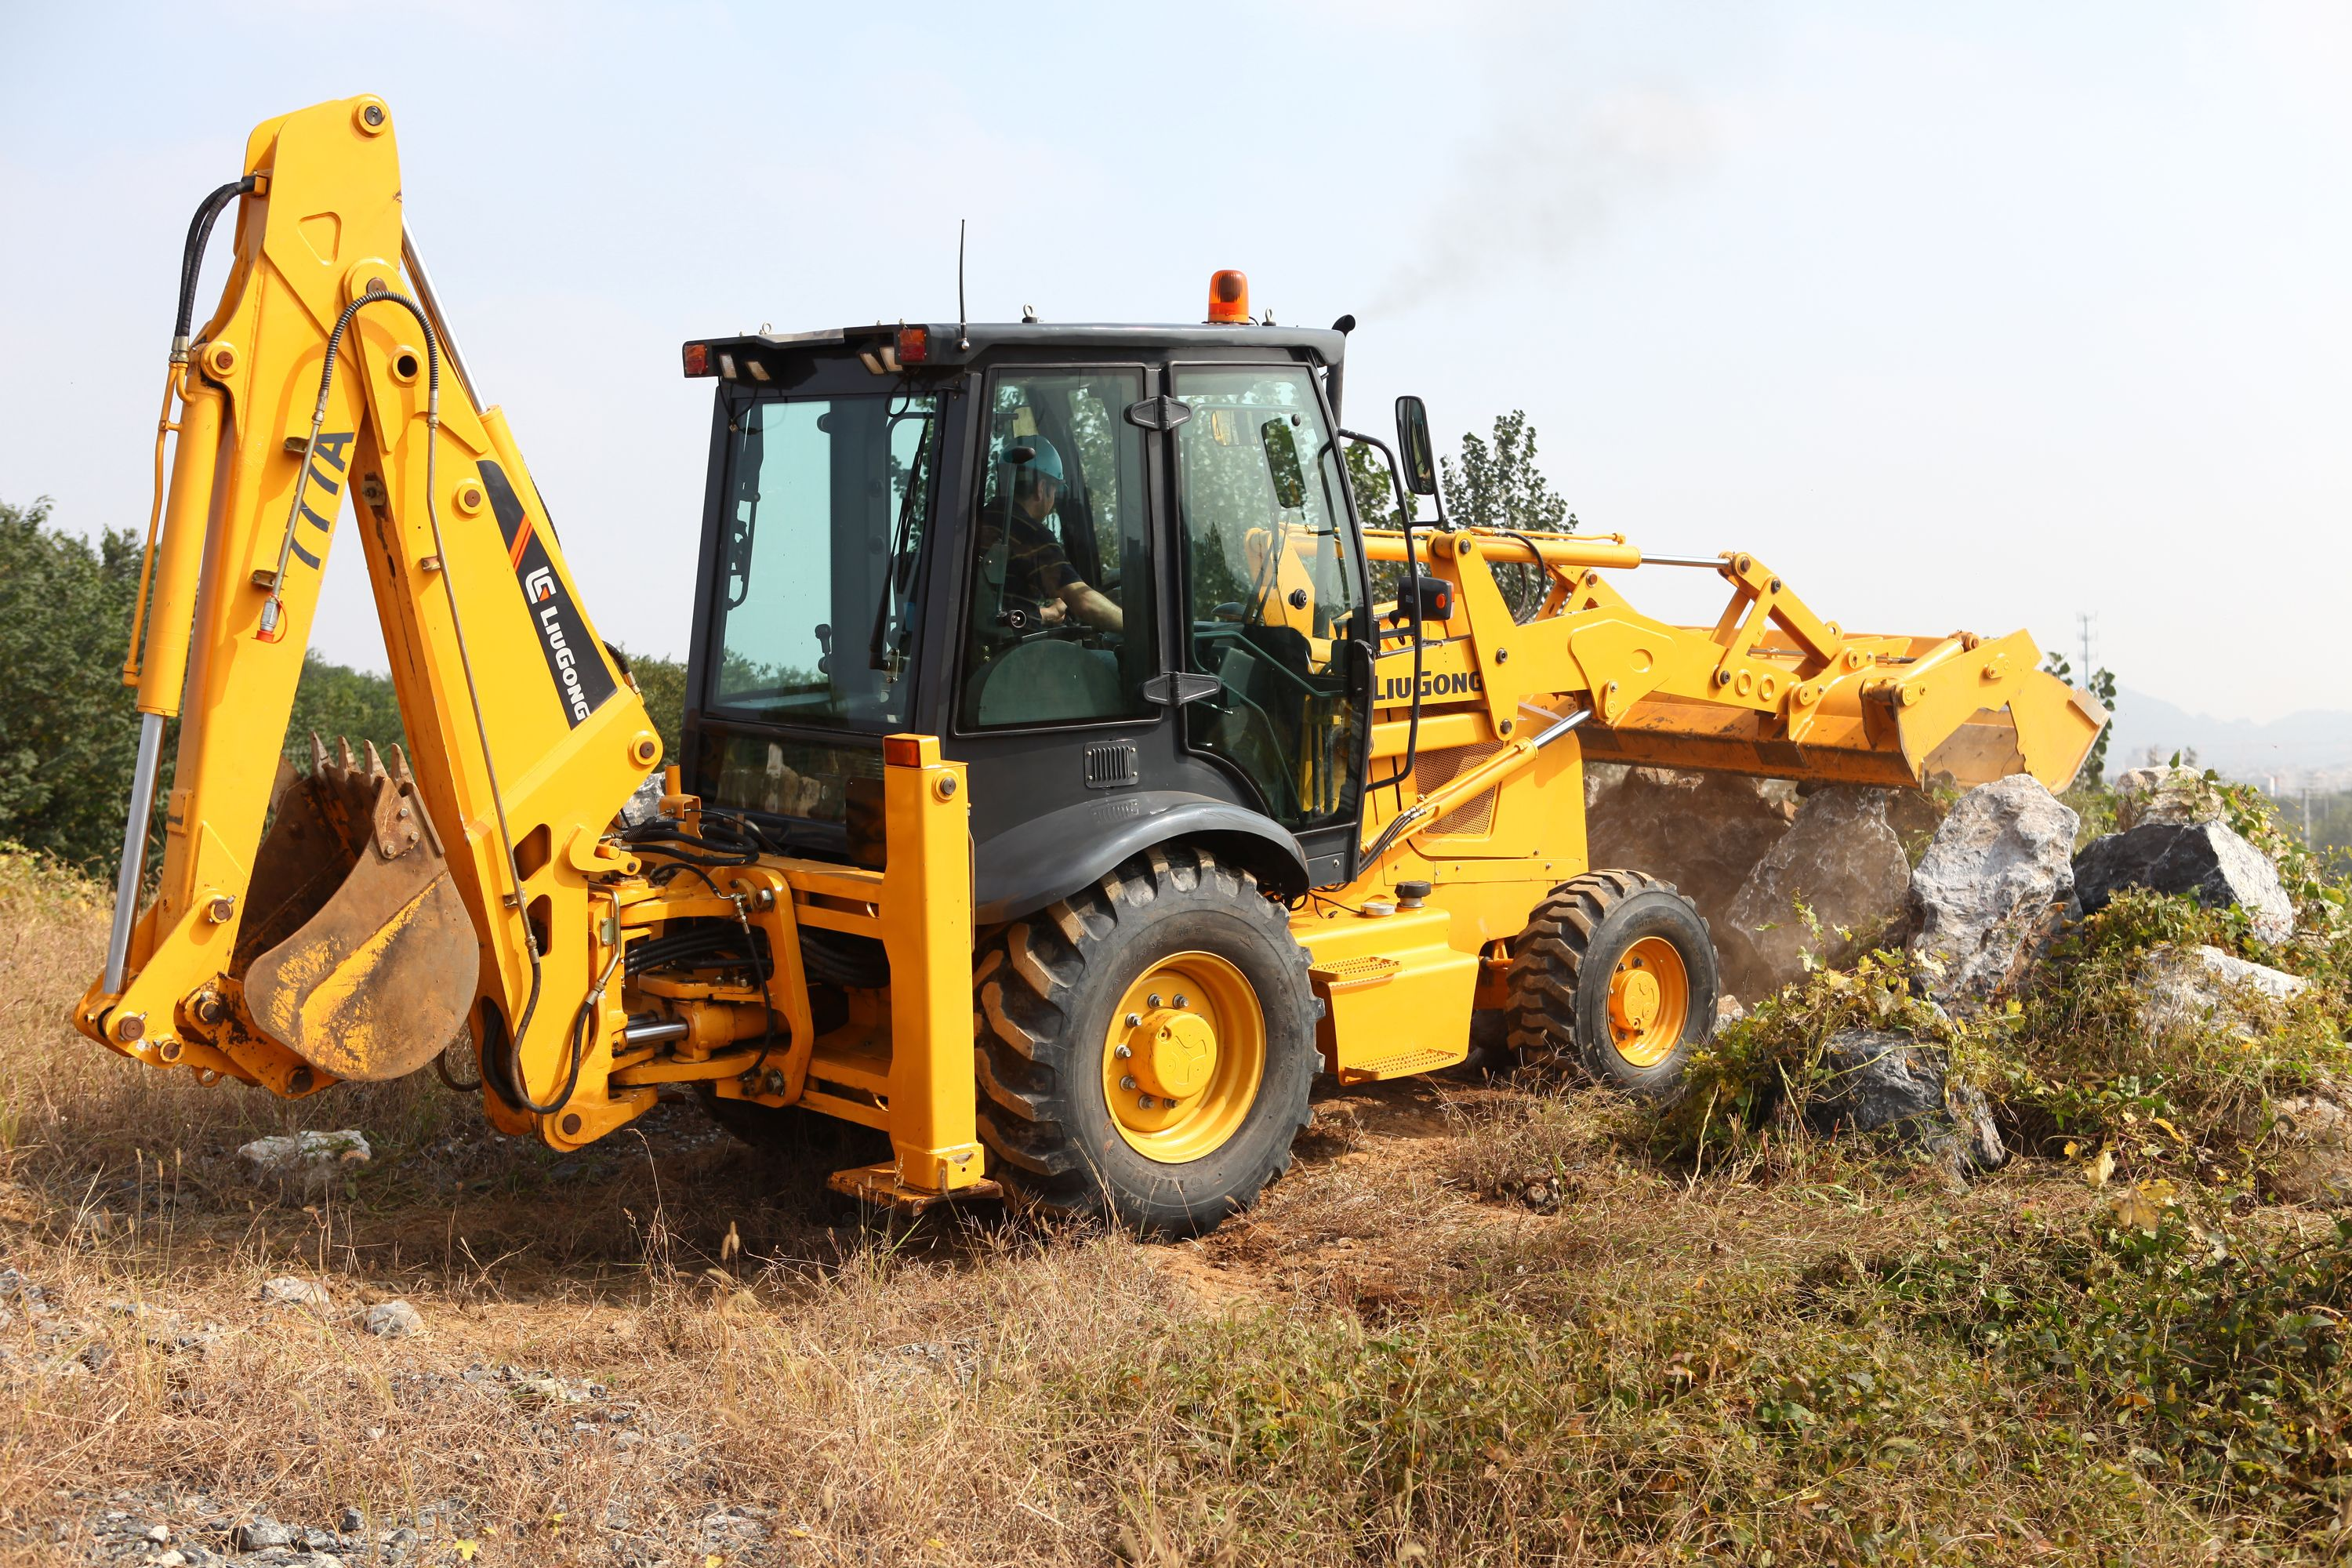 Backhoe loader - Liugong | digger loader hire | Backhoe ...